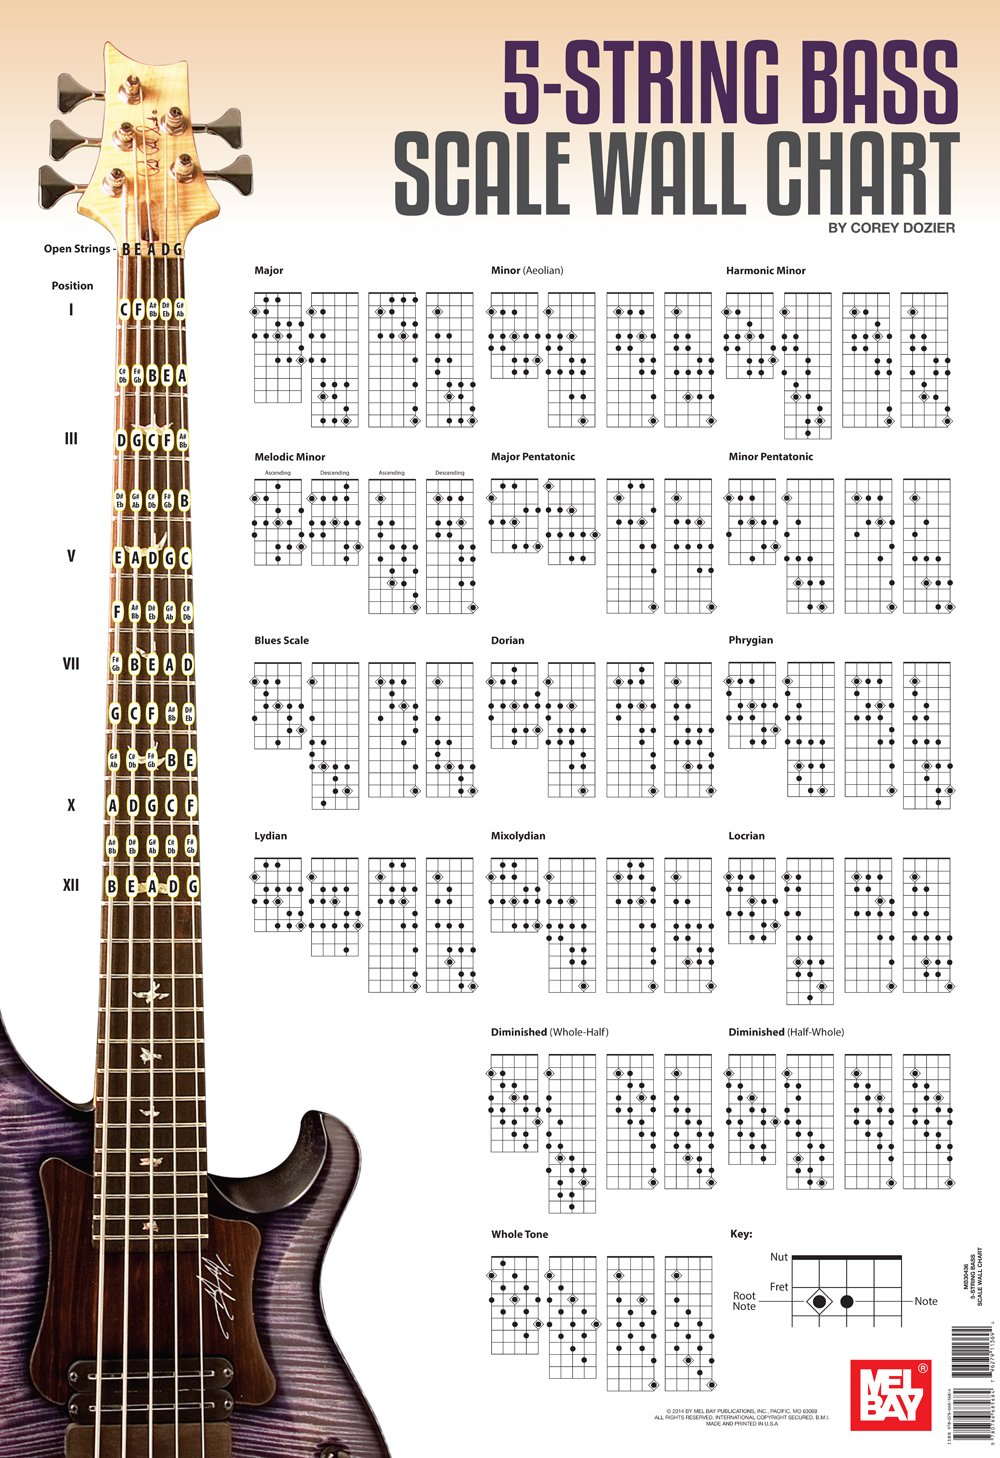 5 String Bass Scale Wall Chart: Corey Dozier: 9780786685684